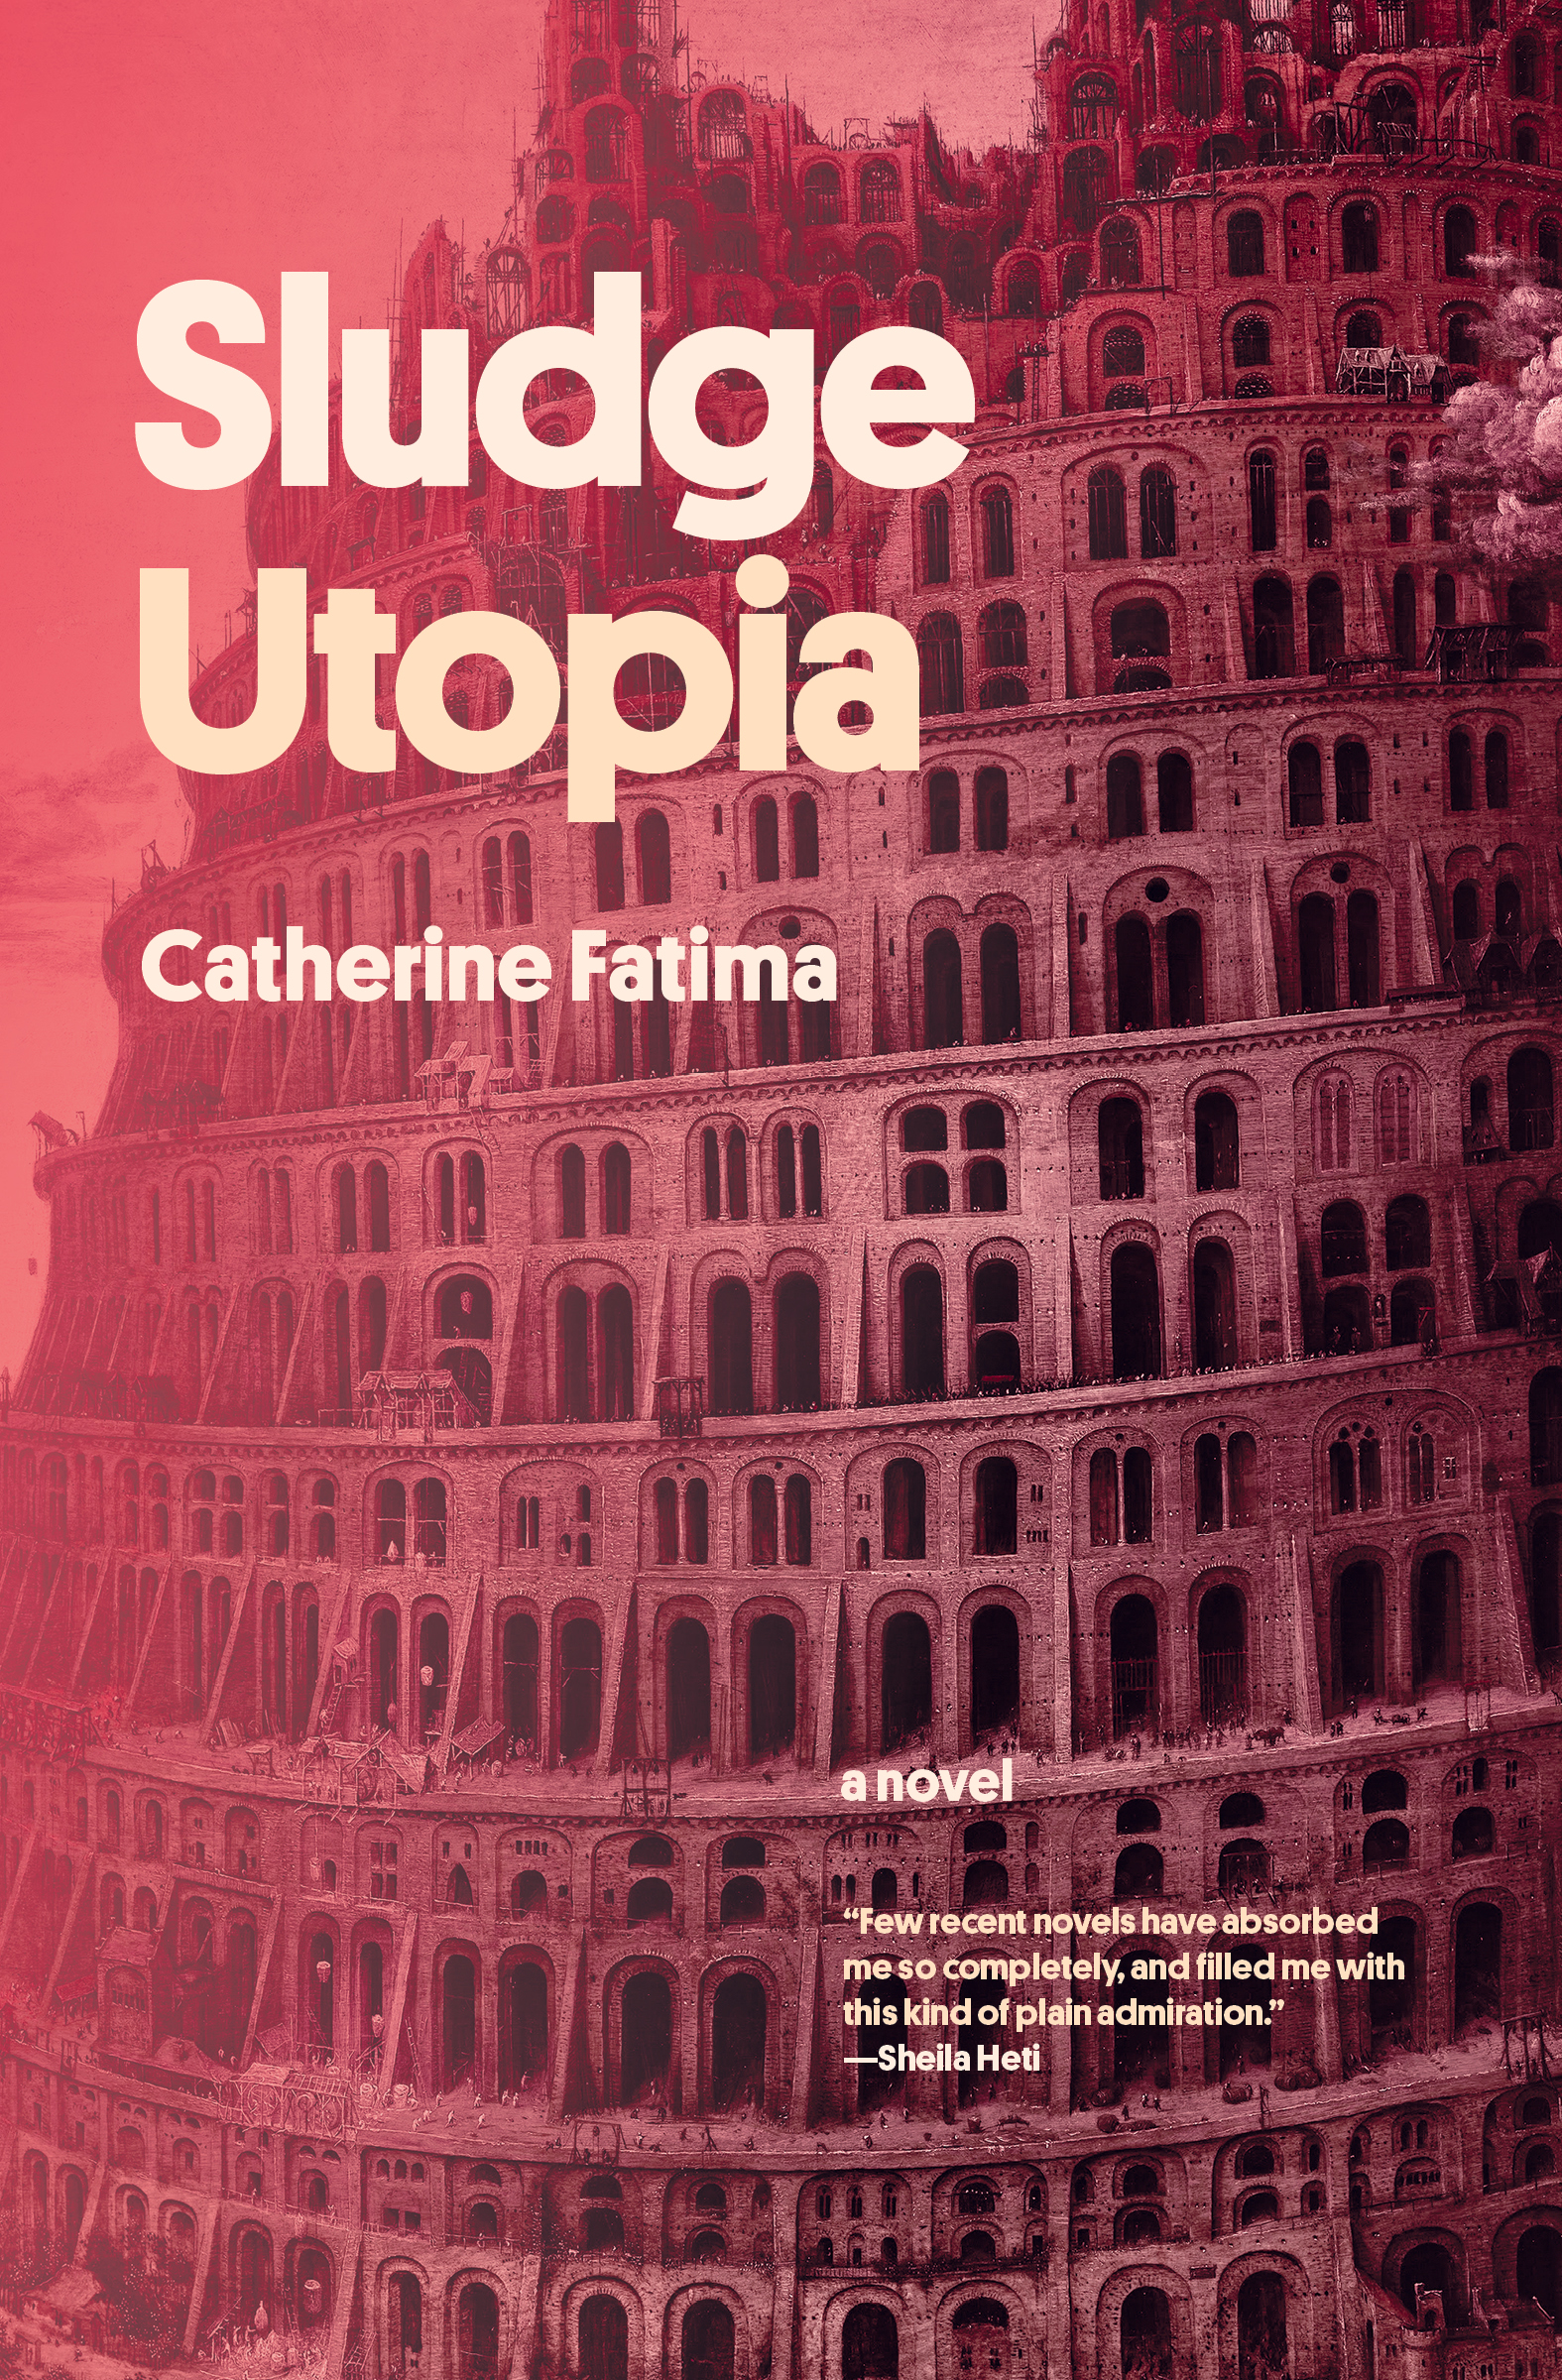 Sludge Utopia by Catherine Fatima